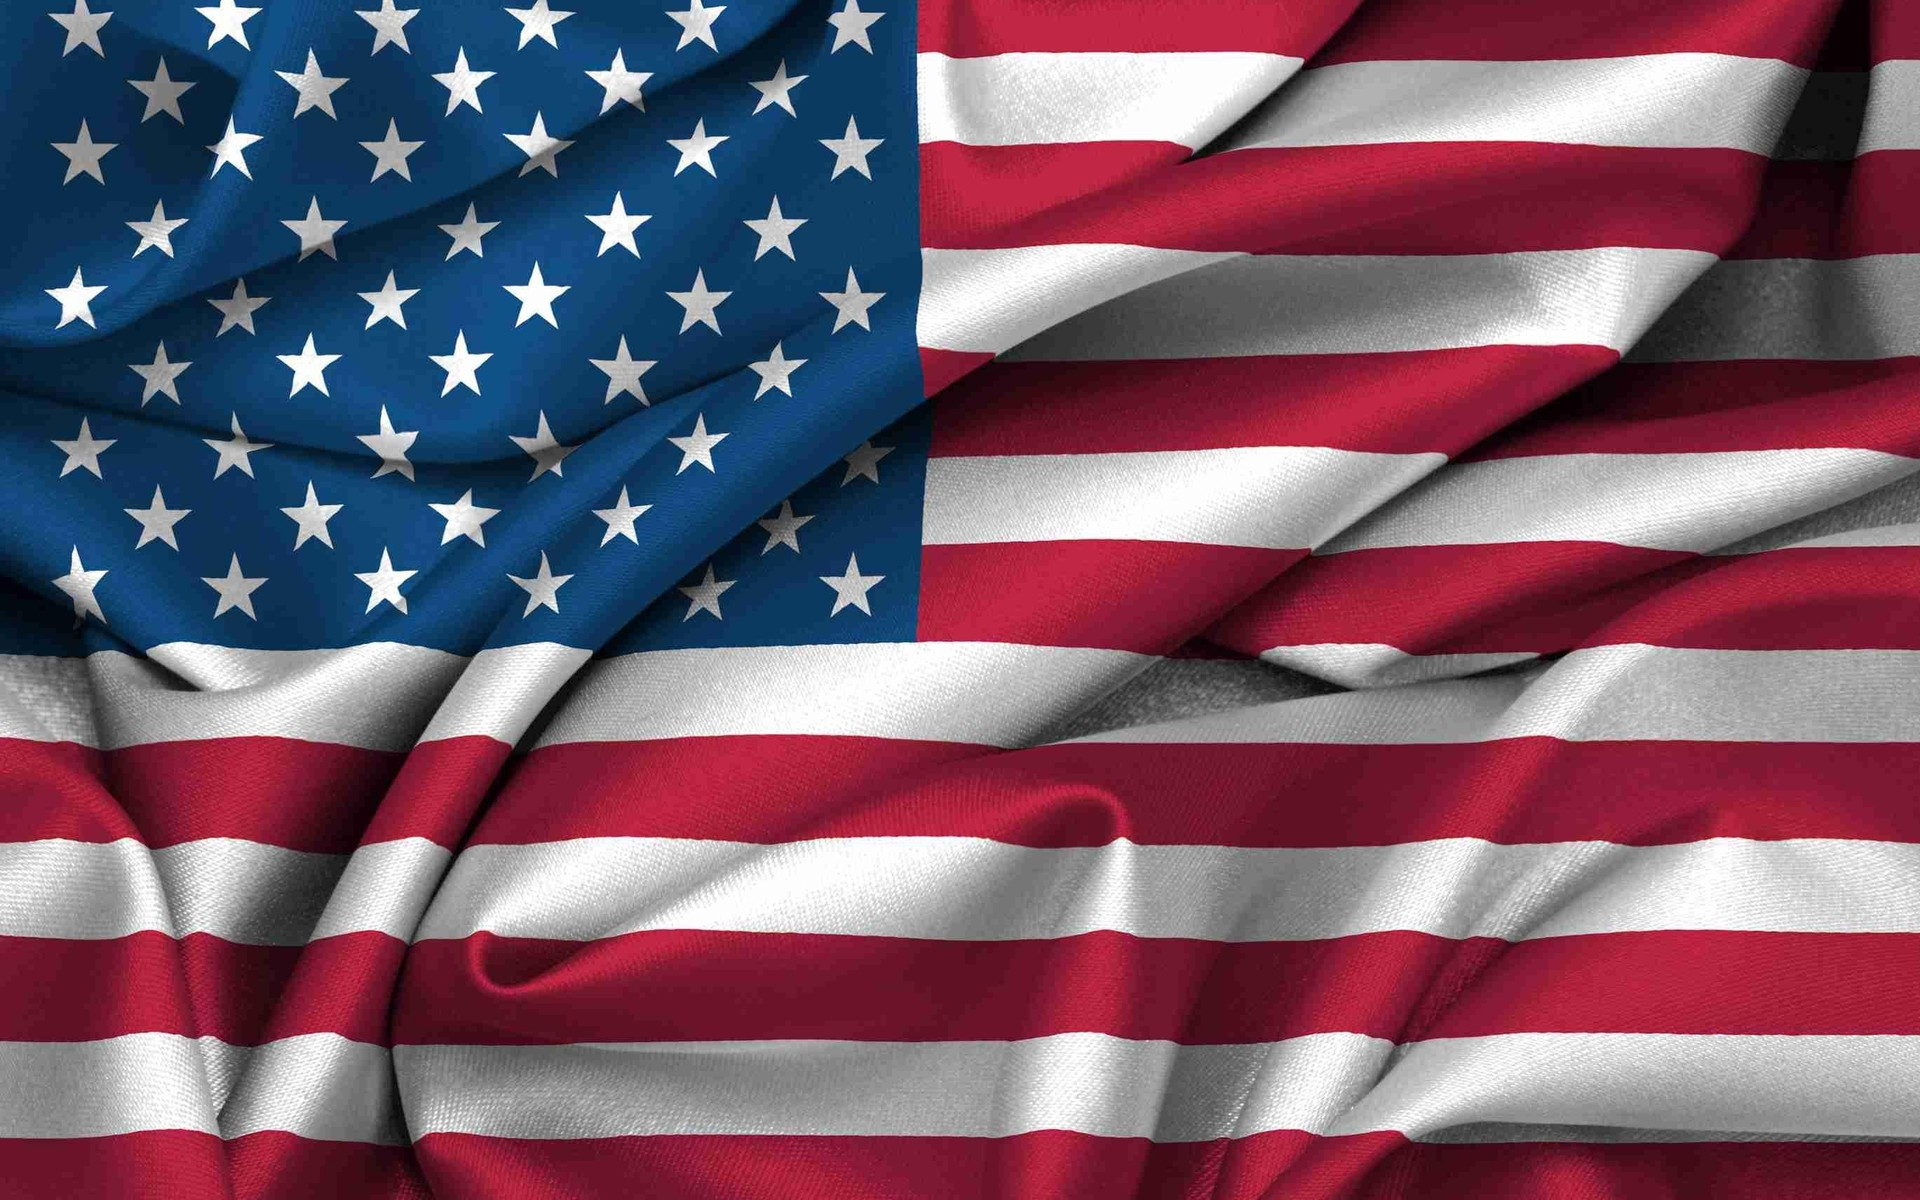 Flag Desktop Background: USA Flag Wallpaper HD